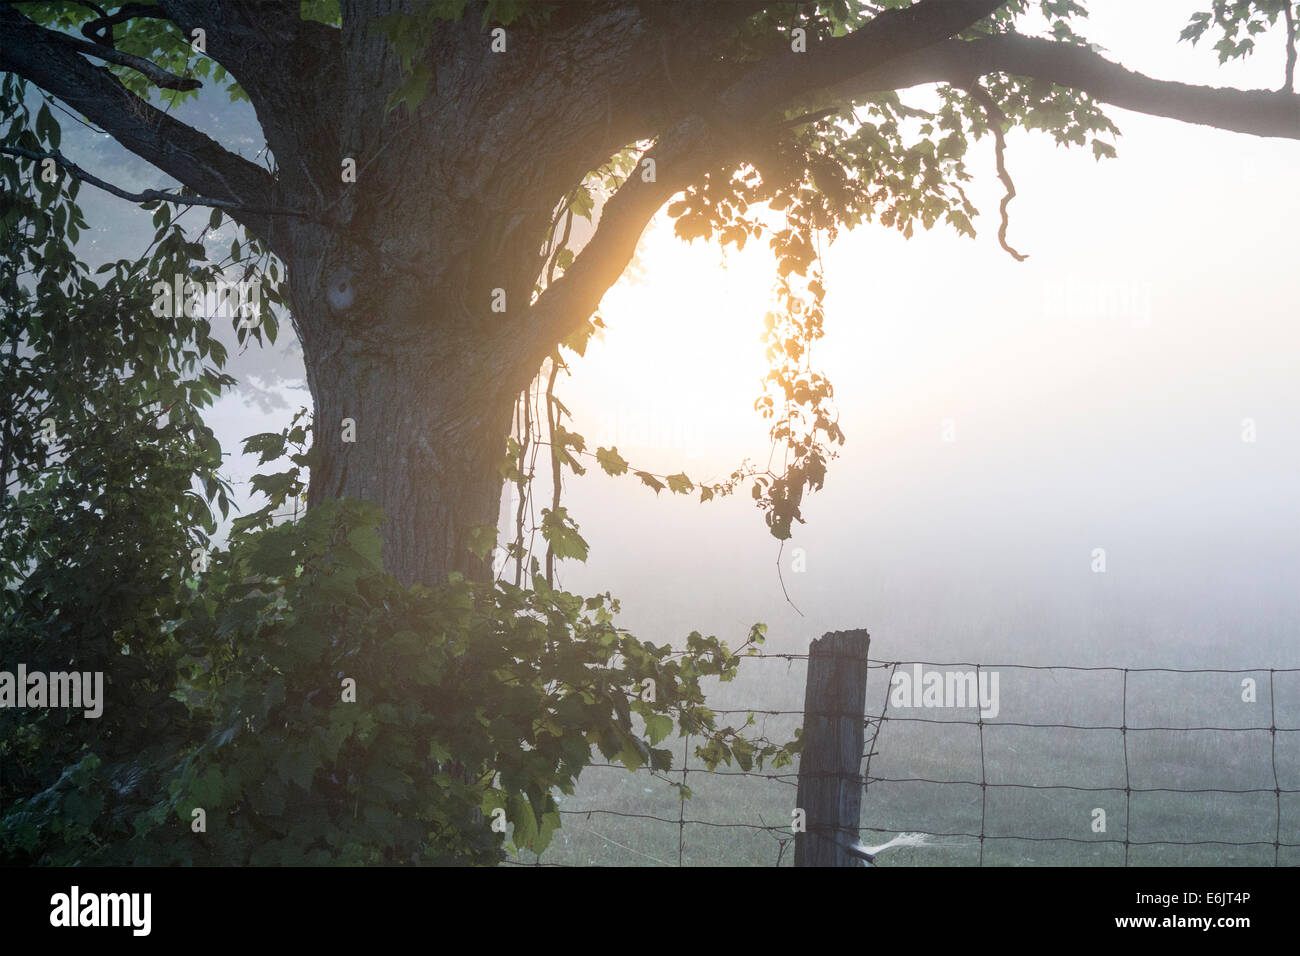 early-morning-sunrise-over-a-farm-with-the-sun-streaming-through-the-E6JT4P.jpg